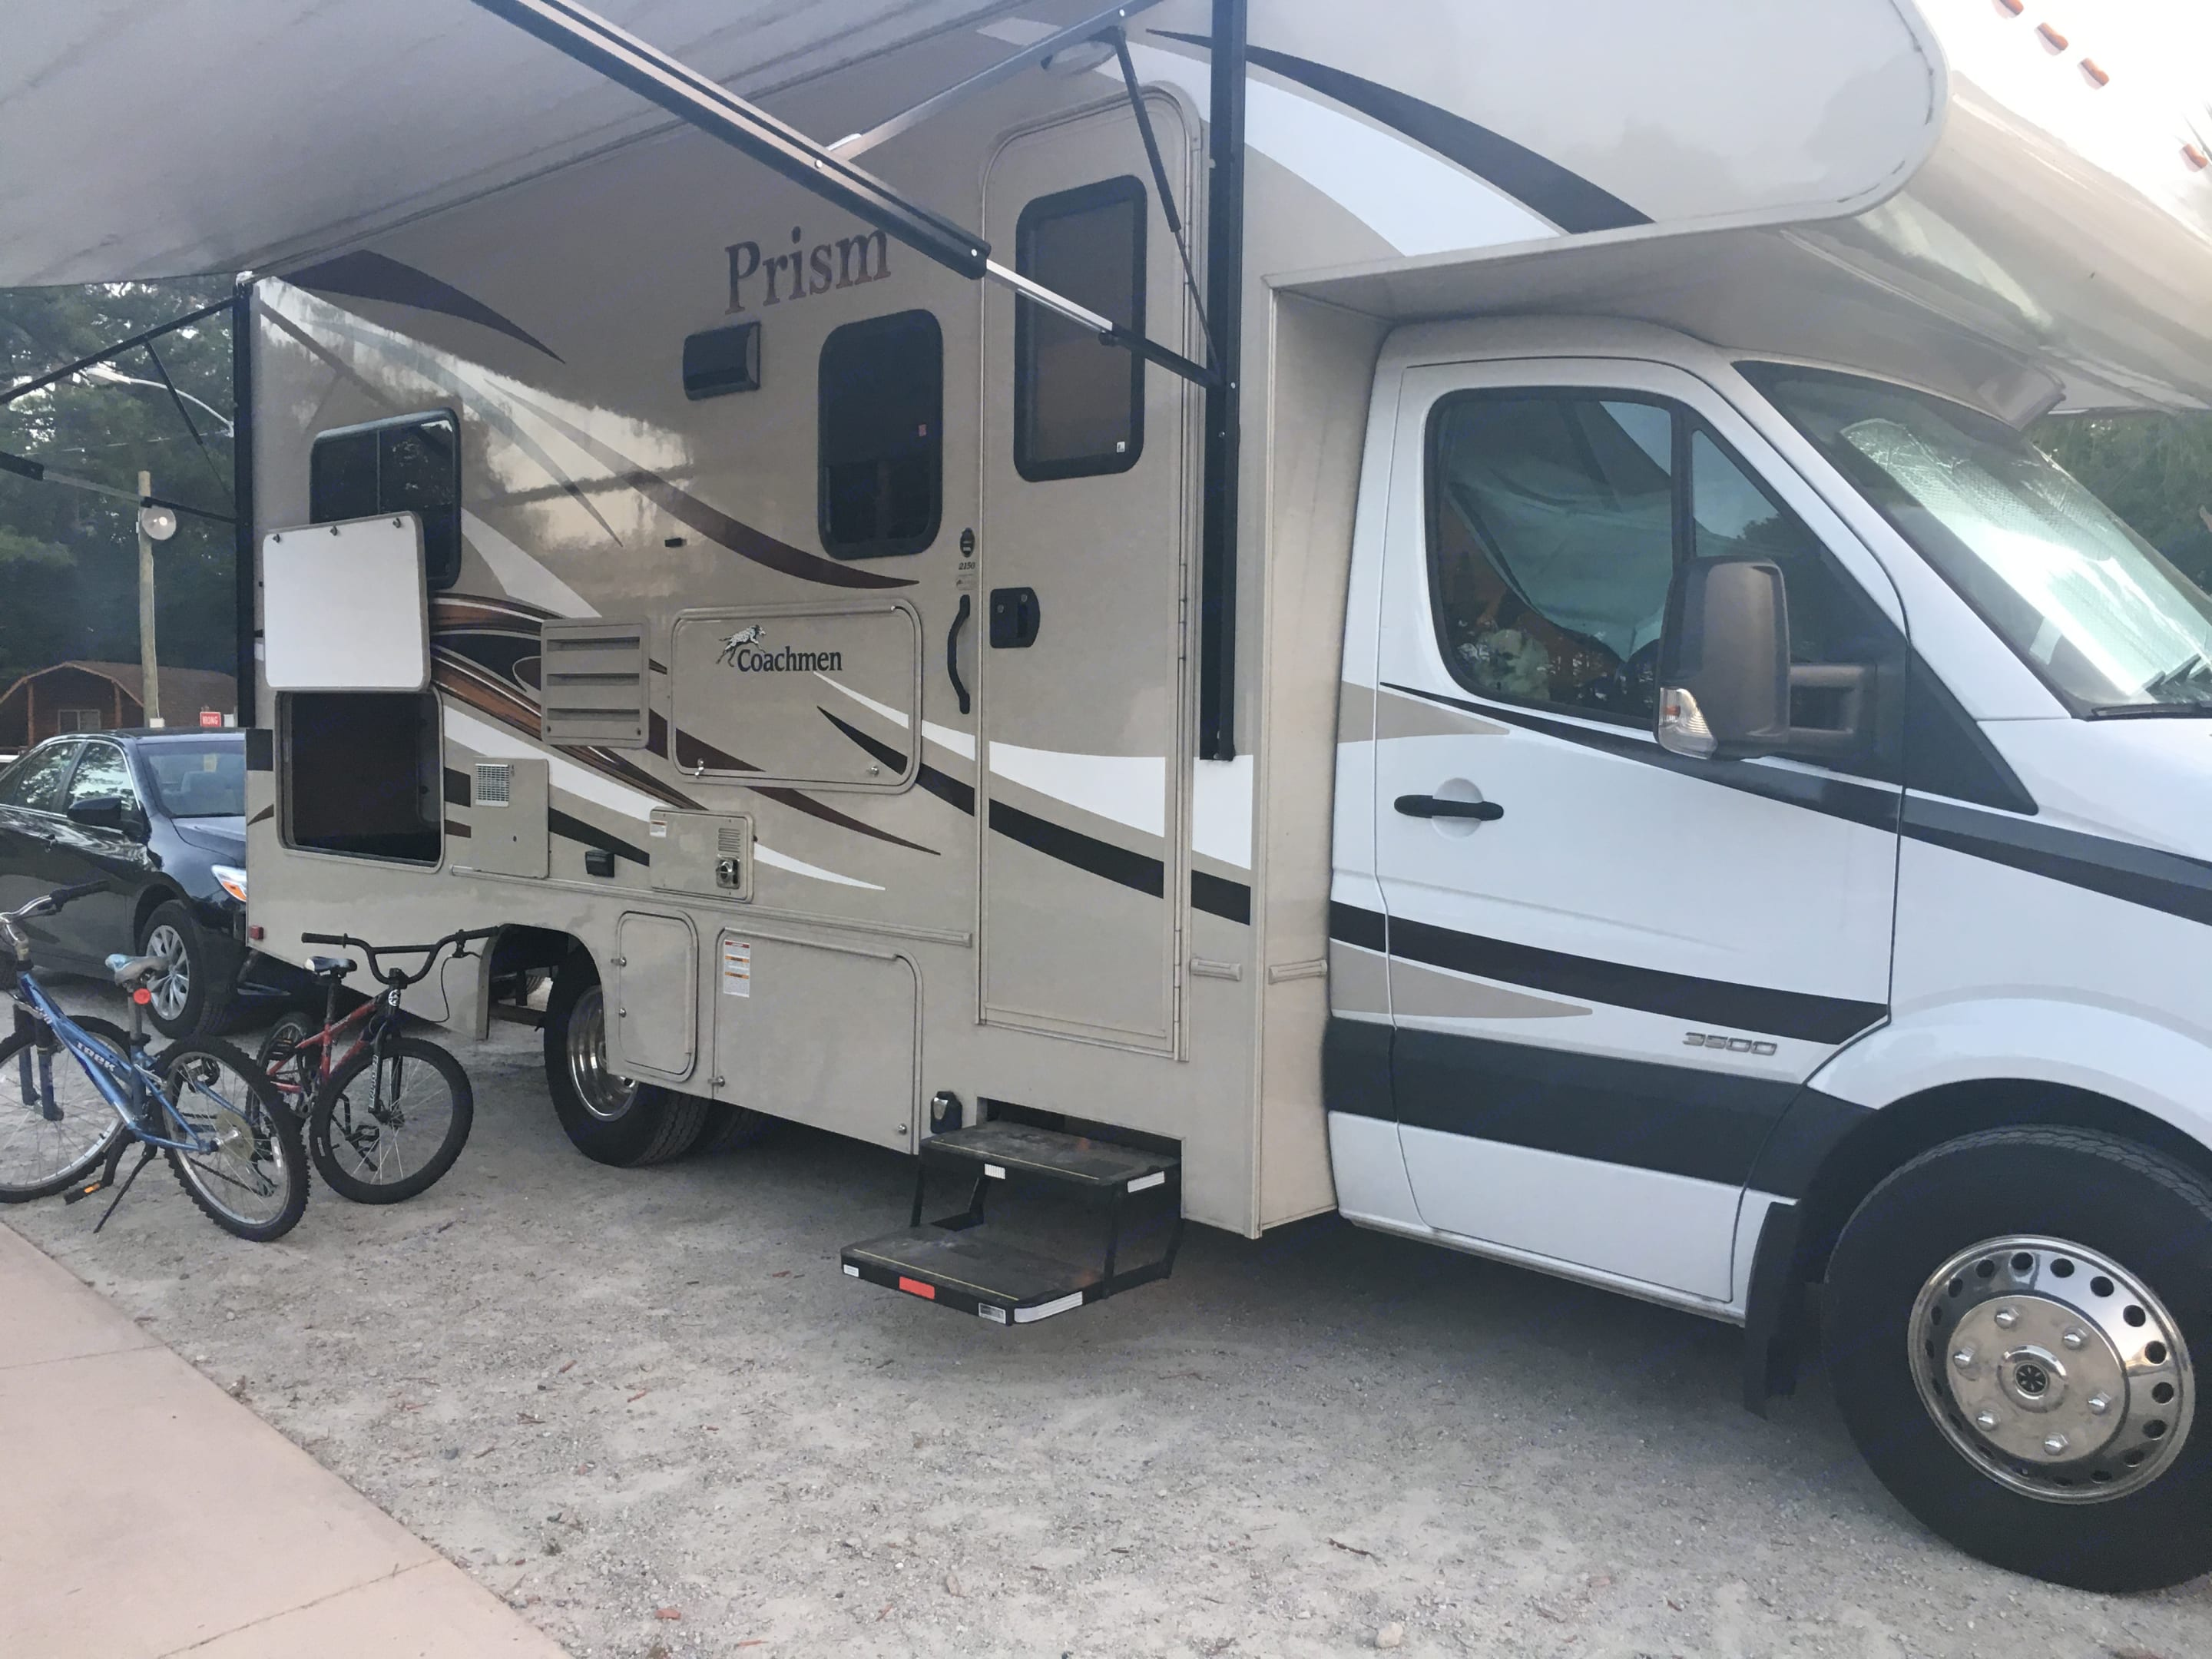 Awning, storage cabinets on exterior. Outside show on other side. . Coachmen Prism 2015